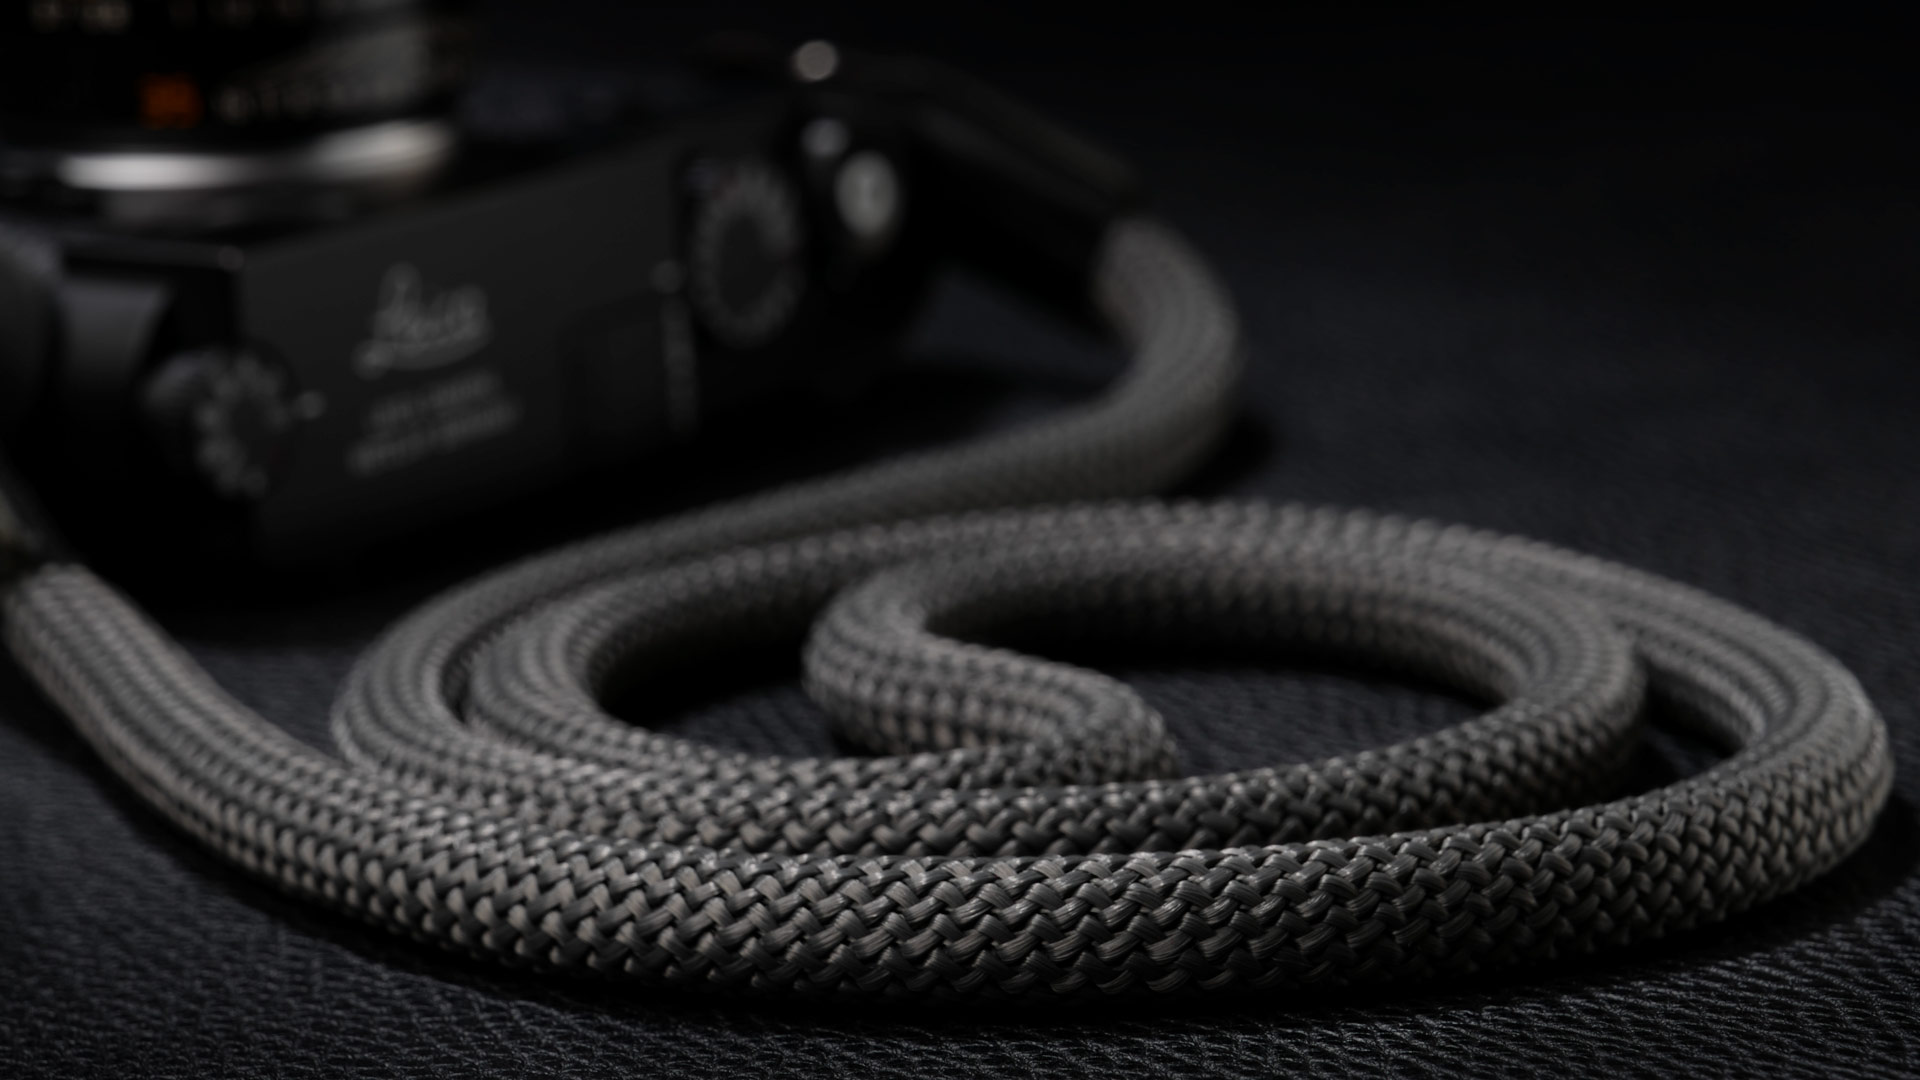 snake strap, rope strap, classic strap, rope camera strap, handmade leather camera strap, leica camera strap, mirrorless camera strap, handmade camera strap, dslr camera strap, grey camera strap